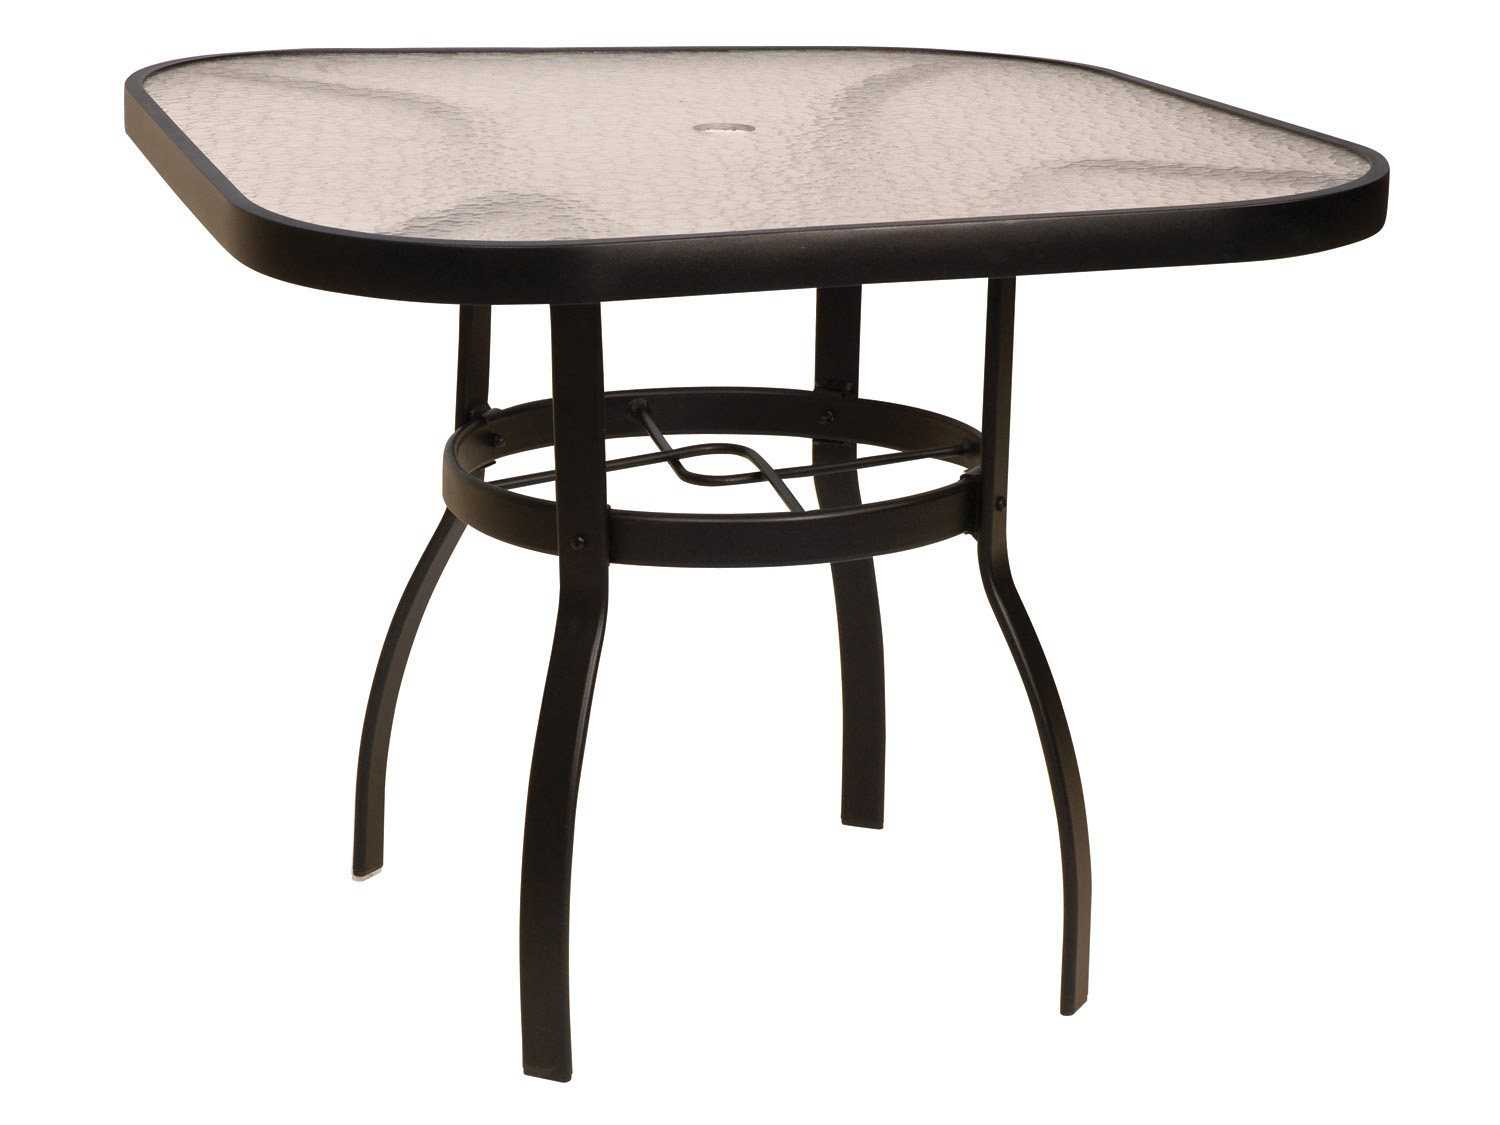 Woodard Deluxe Aluminum 36 Square Acrylic Top Table With Umbrella Hole 822137W